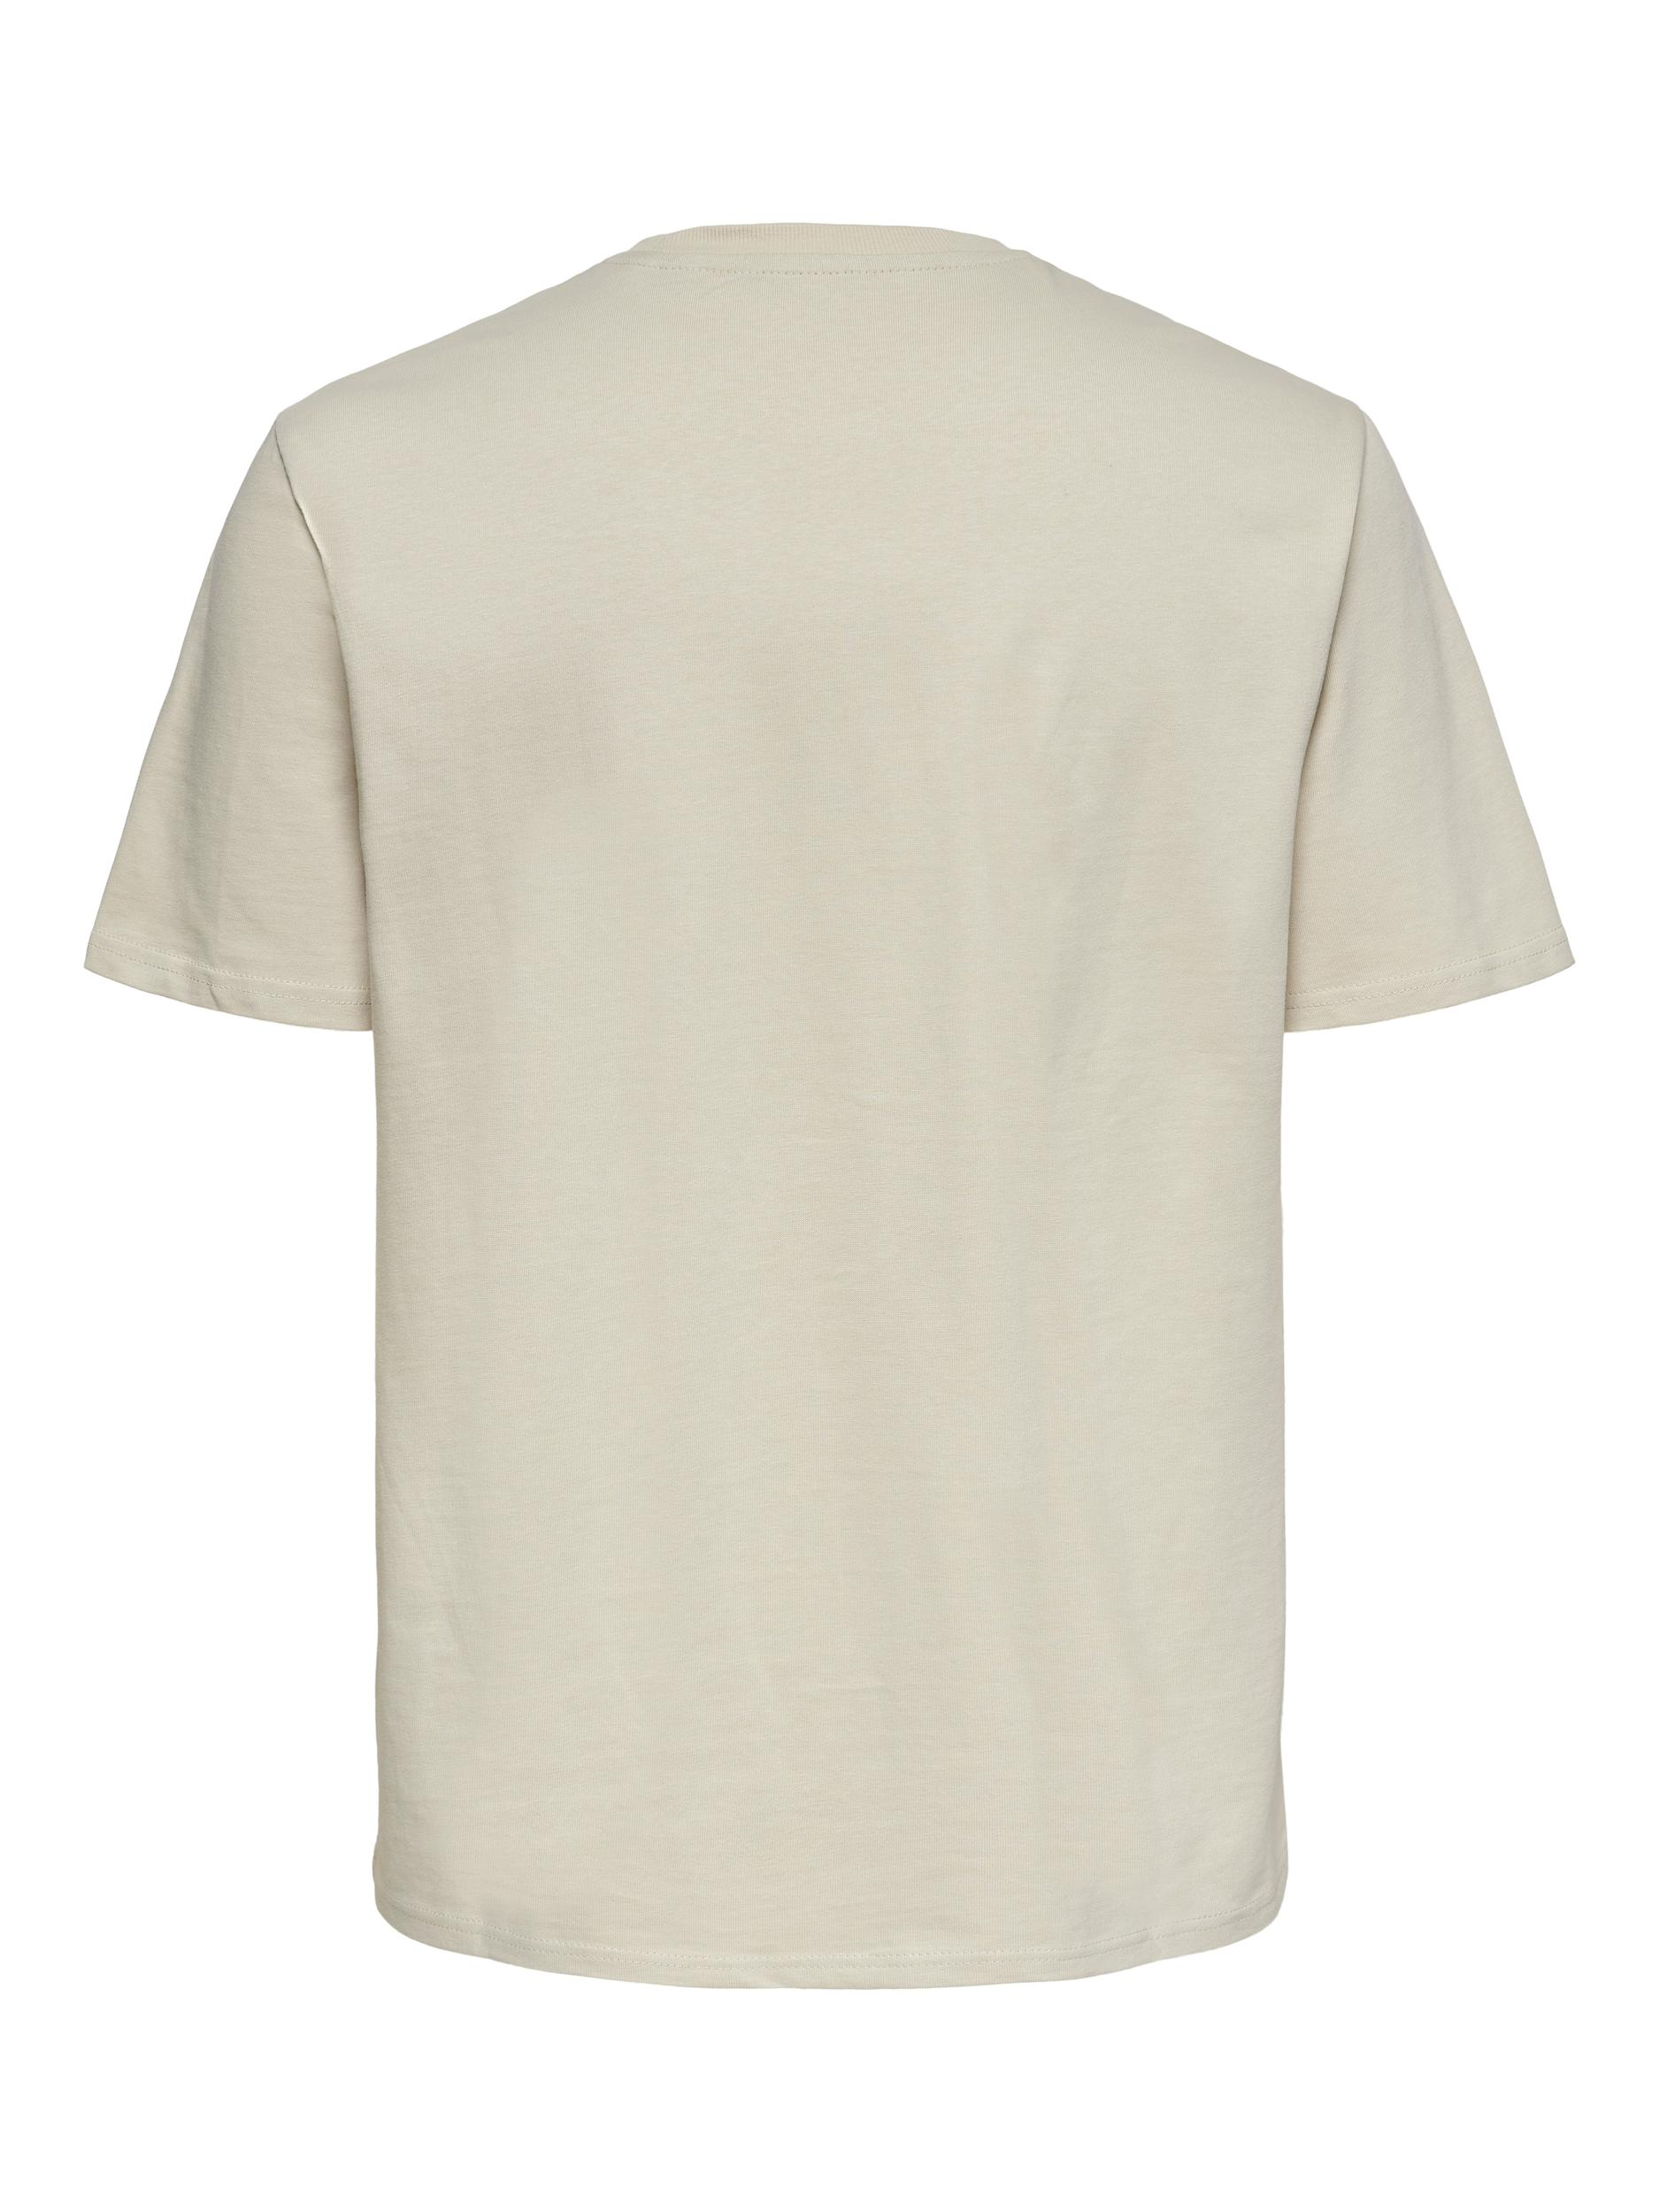 Only & Sons Anel Life SS t-shirt, pelican, large